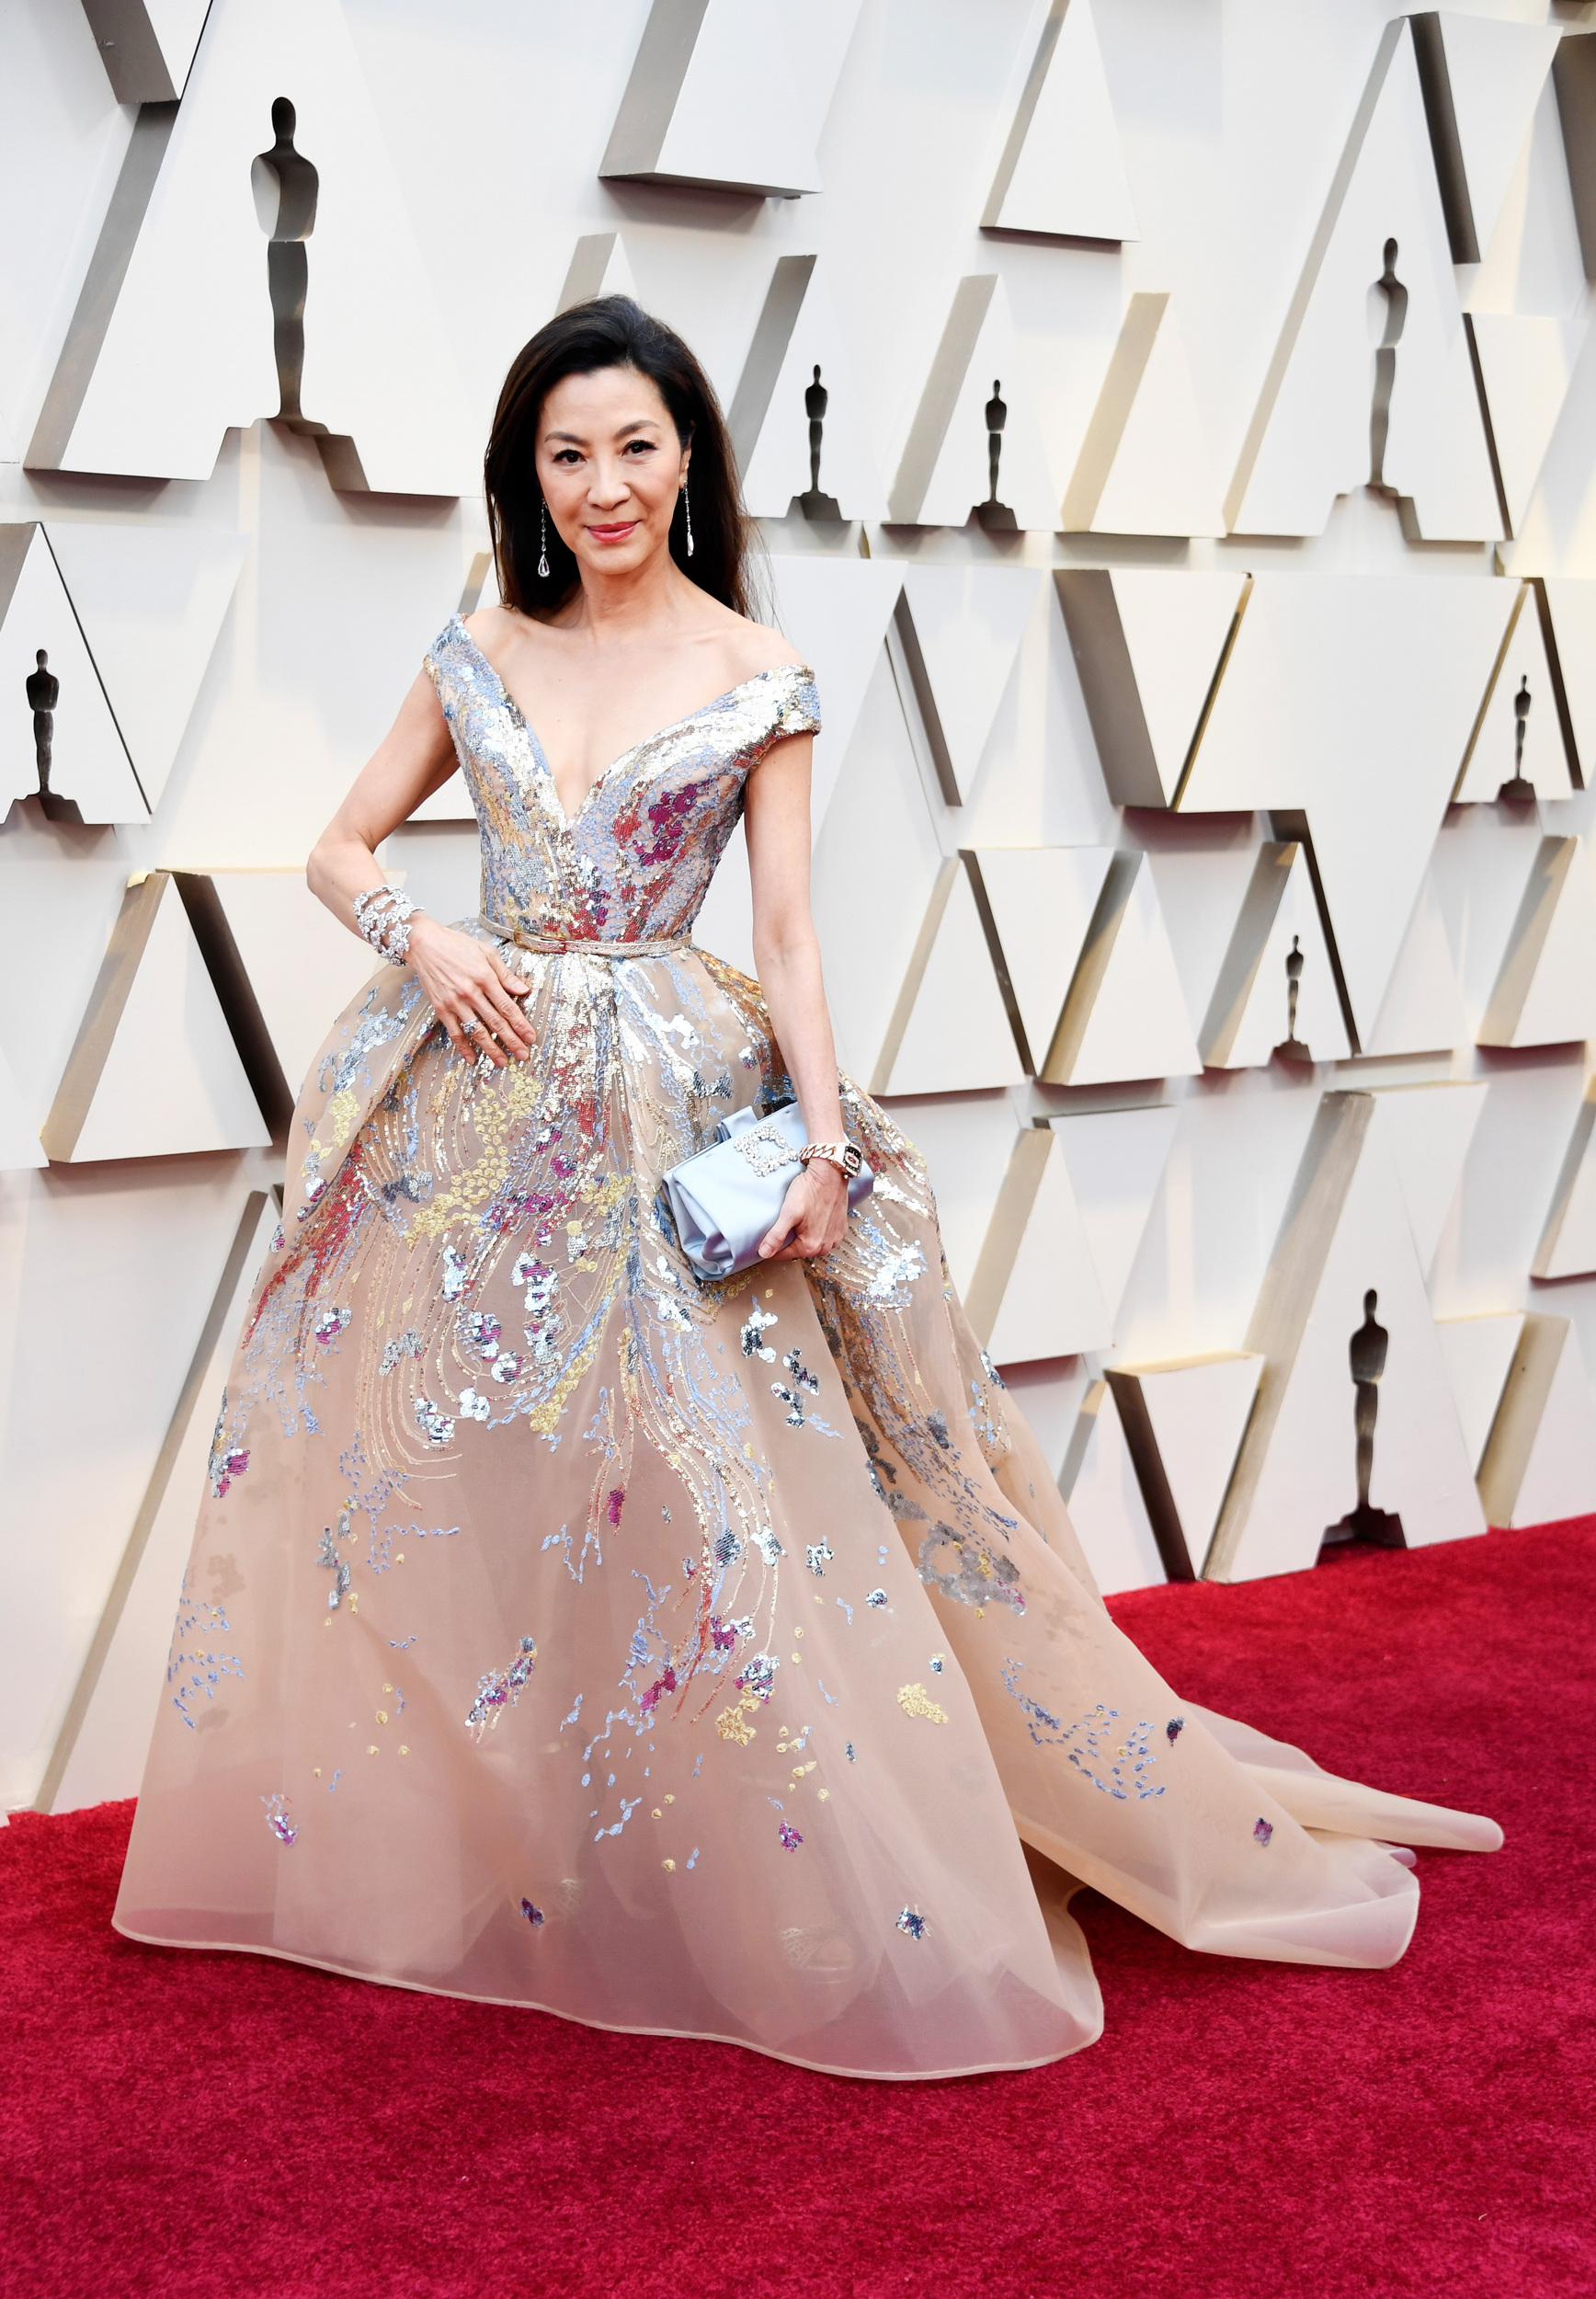 Michelle Yeoh sees your shiny outfit, Emilia Clarke, and she raises you metallic accents, a sequined bodice and exaggerated glam by Elie Saab.